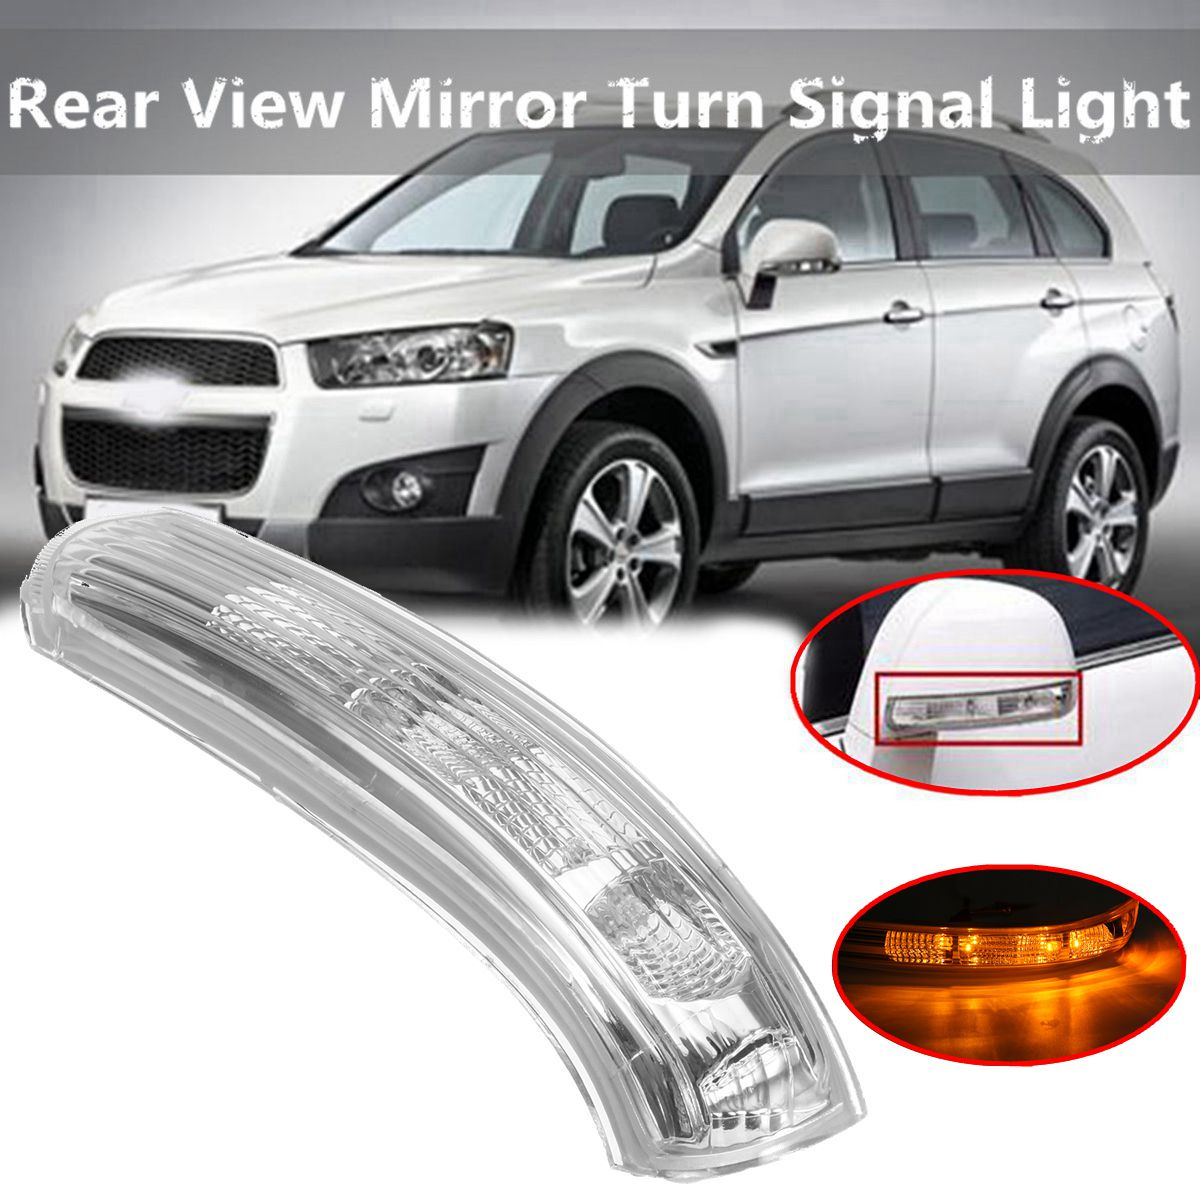 Car Rearview Mirror Turn Signal Light Left/Right Rear View Mirrors Lamp For Chevrolet/Captiva 2007-2016Car Rearview Mirror Turn Signal Light Left/Right Rear View Mirrors Lamp For Chevrolet/Captiva 2007-2016